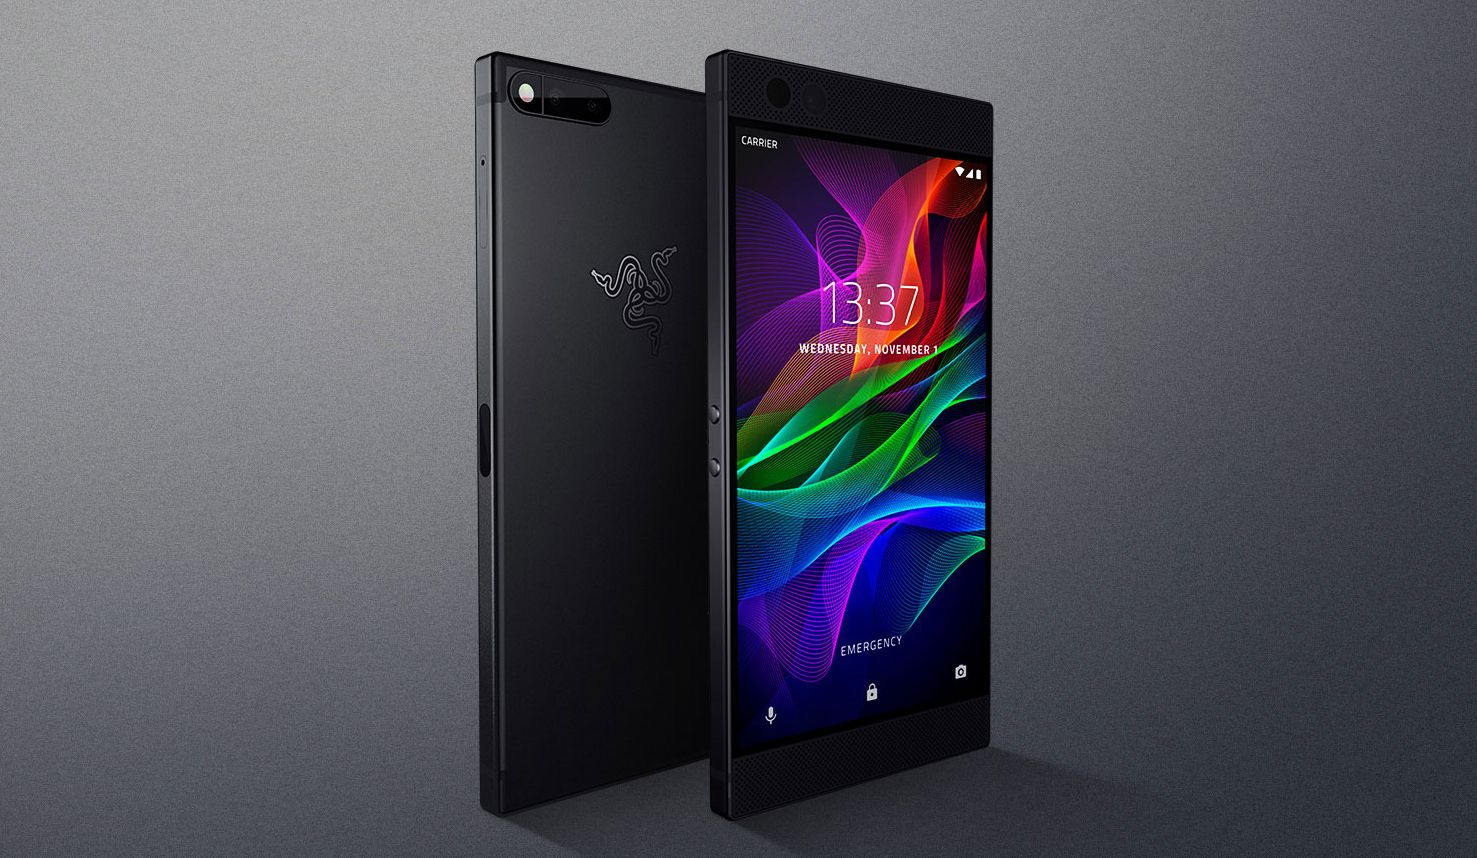 Razer introduced the first smartphone for gamers